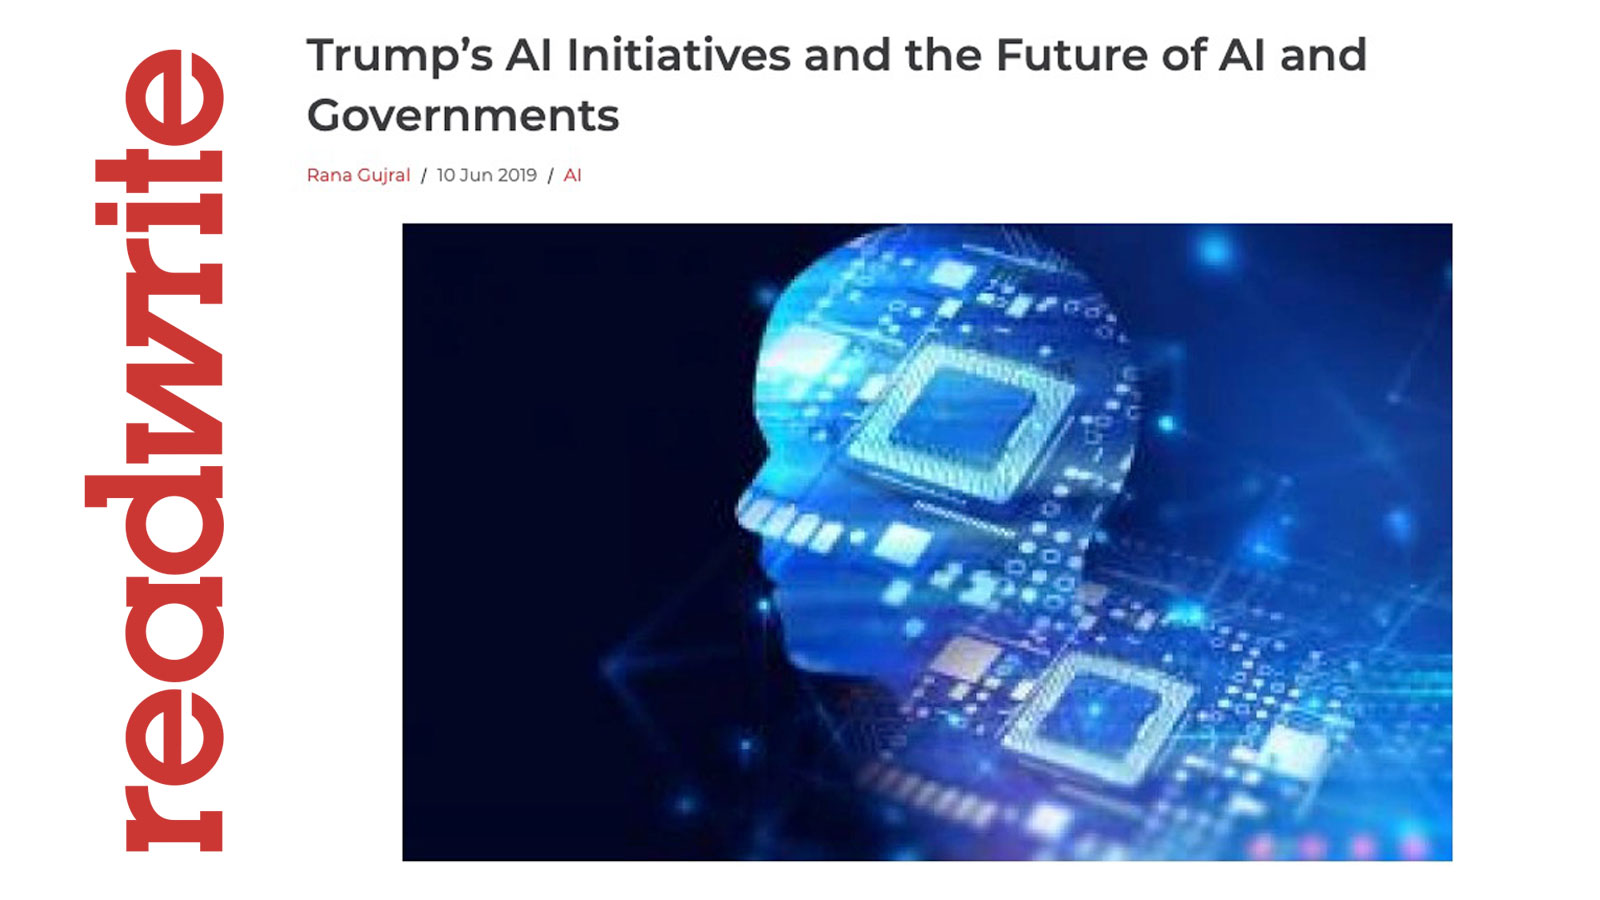 Trump's AI Initiatives and the Future of AI and Governments - Behavioral Signals on readwrite